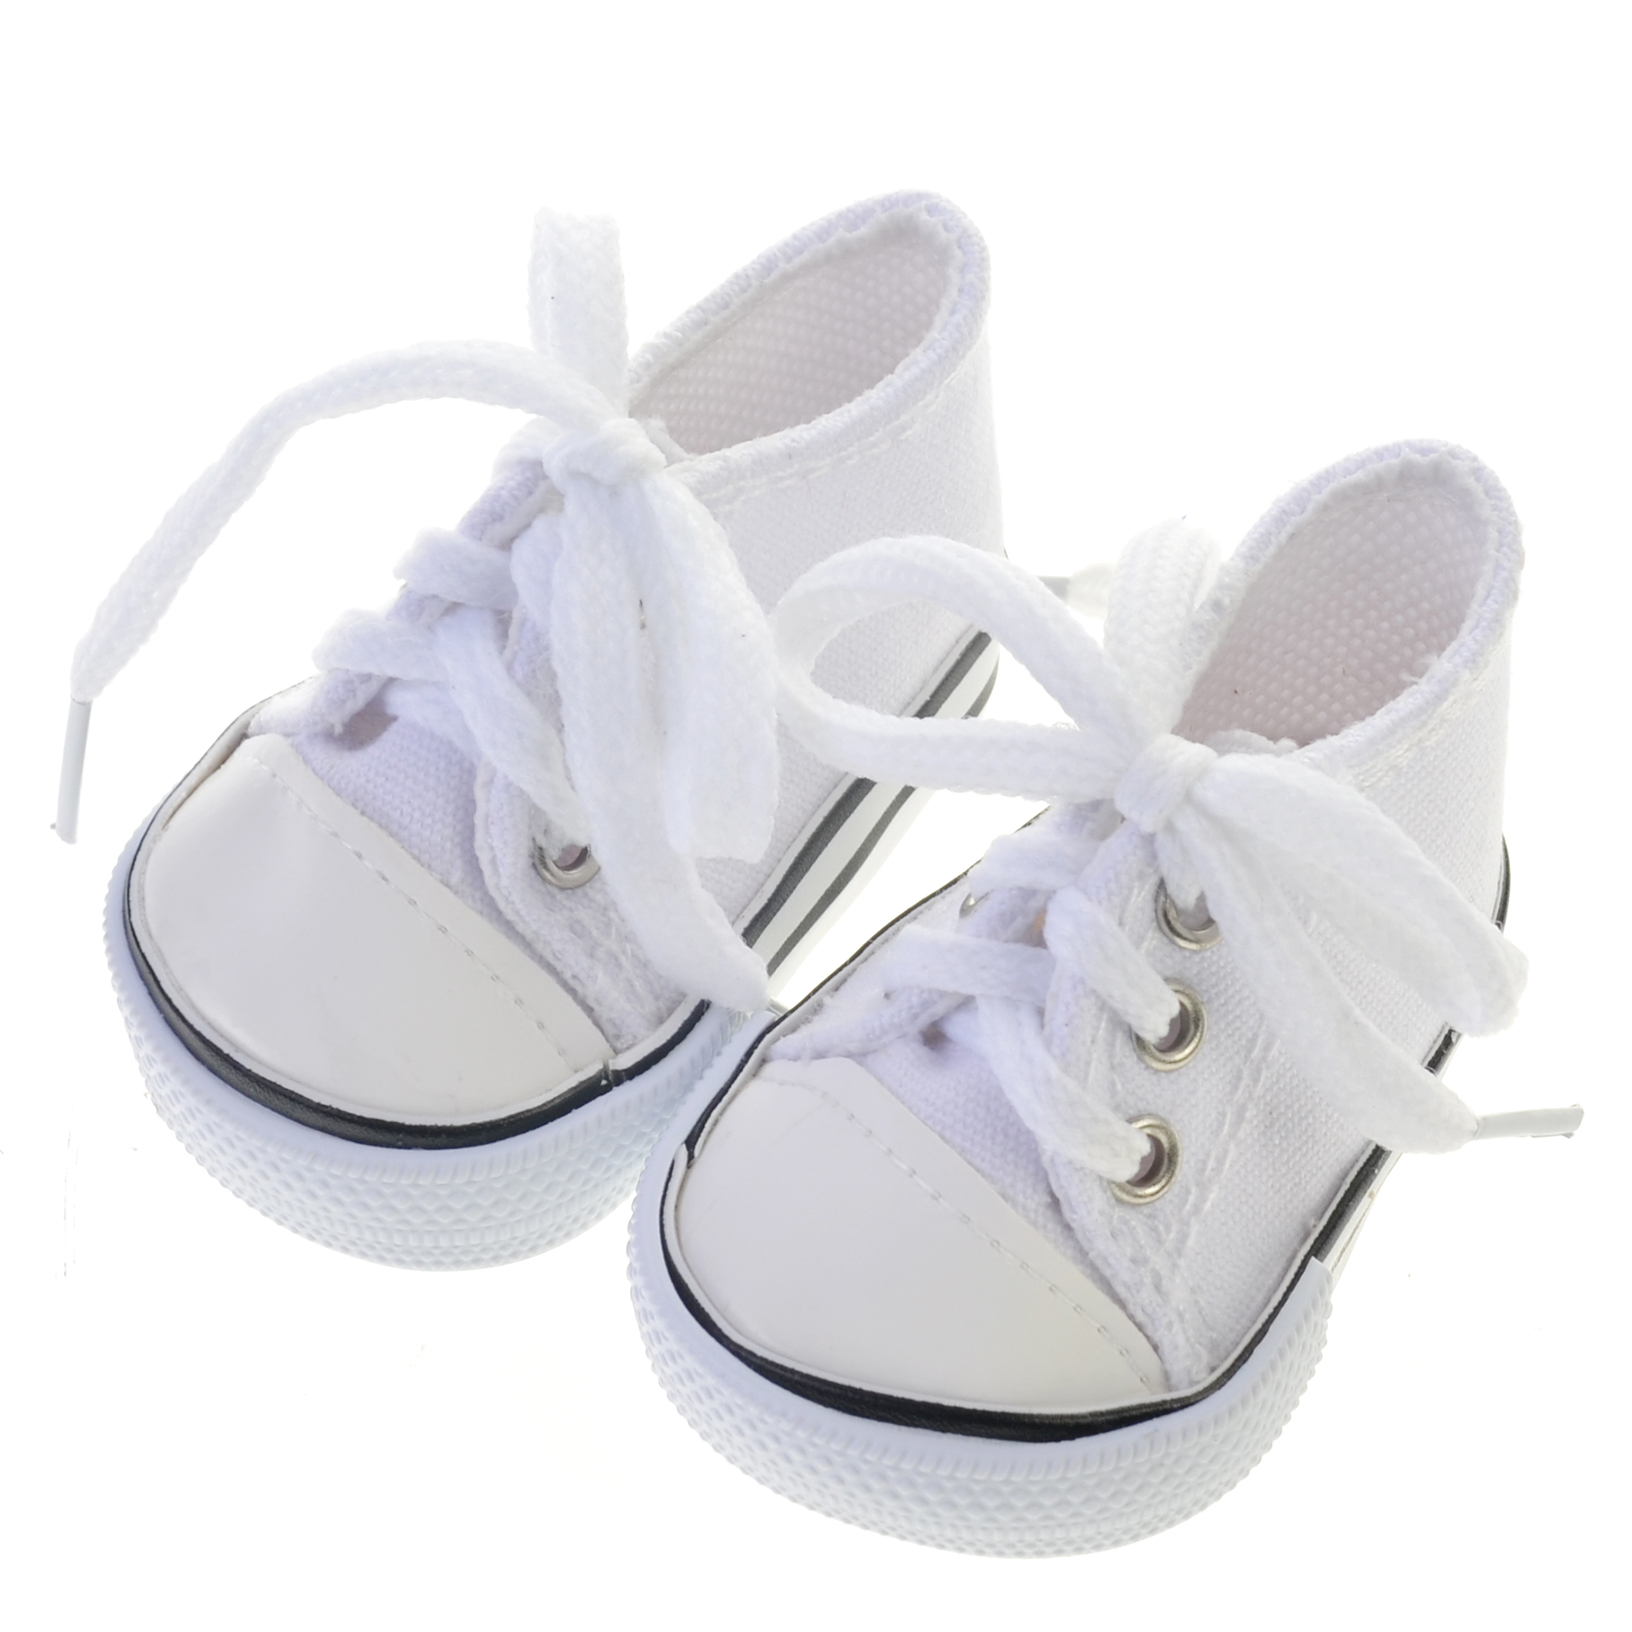 a2f4e5677f584 Details about White Doll Sneakers fit American Girl Dolls, 18 Inch Doll  White Shoes in Canvas